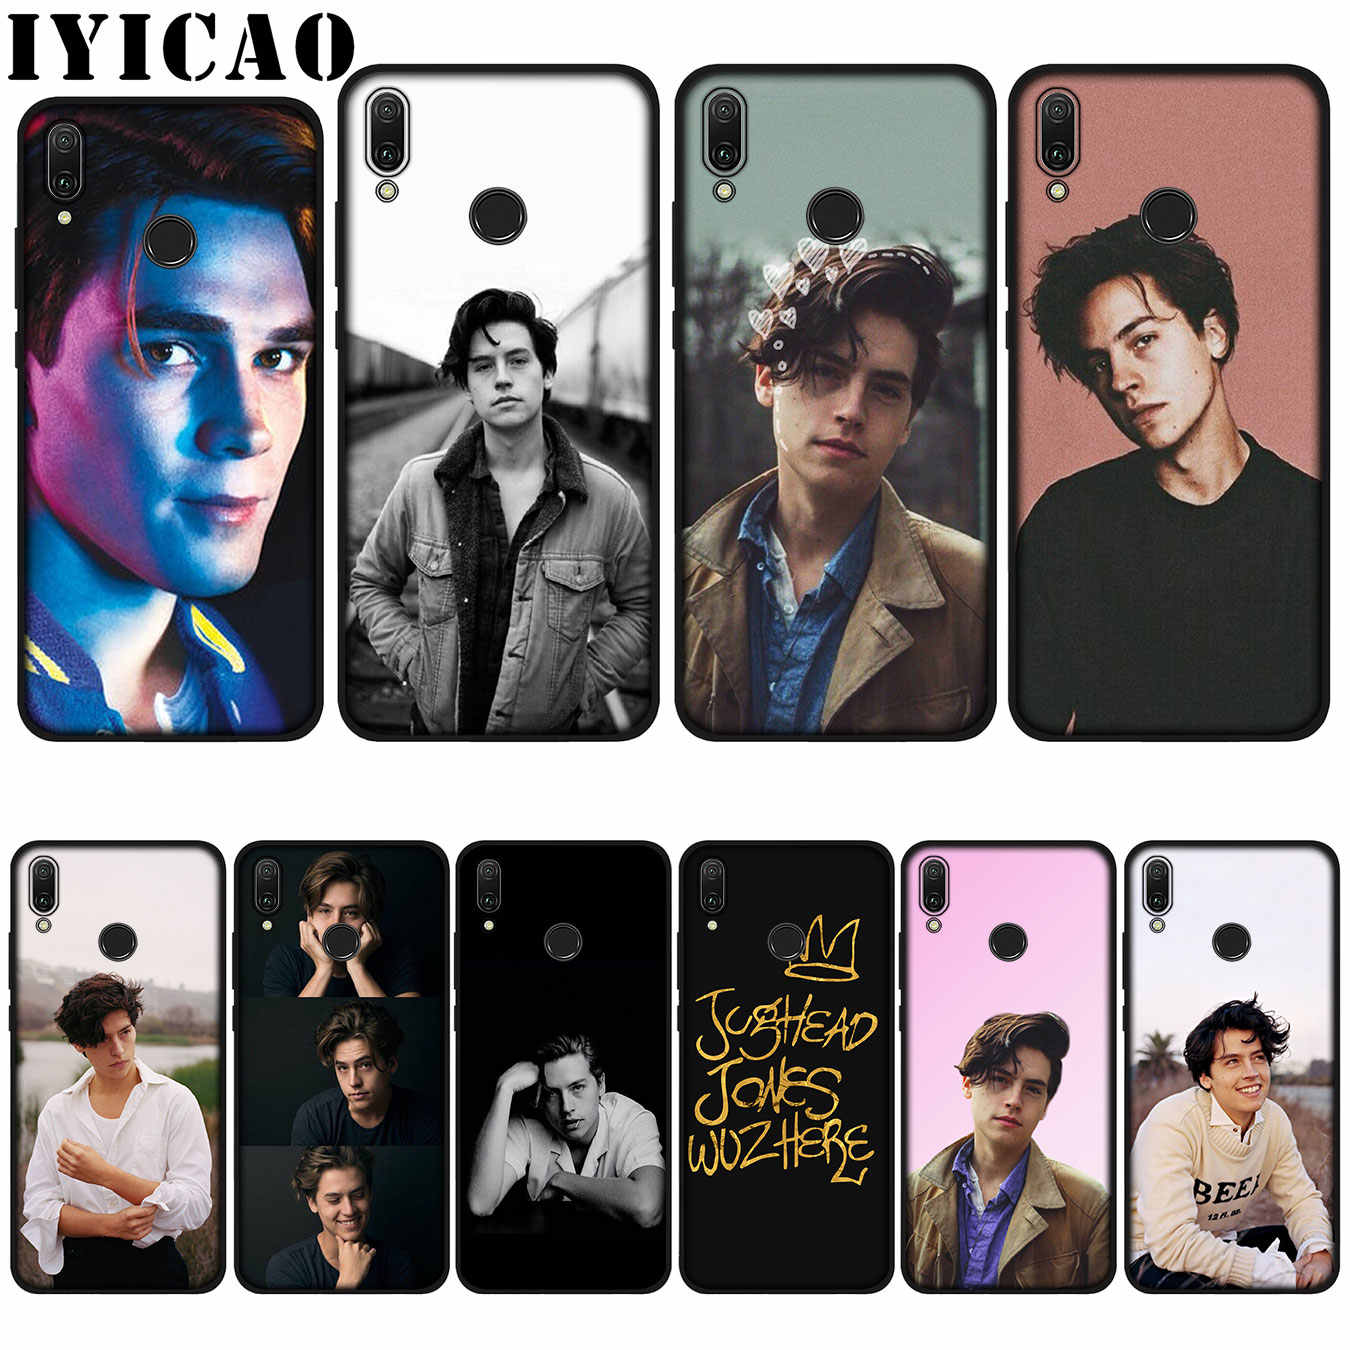 IYICAO American TV Riverdale Jughead Jones Soft Case for Huawei P20 Pro P10 P8 P9 P30 Lite Mini 2017 P Smart 2019 Cover